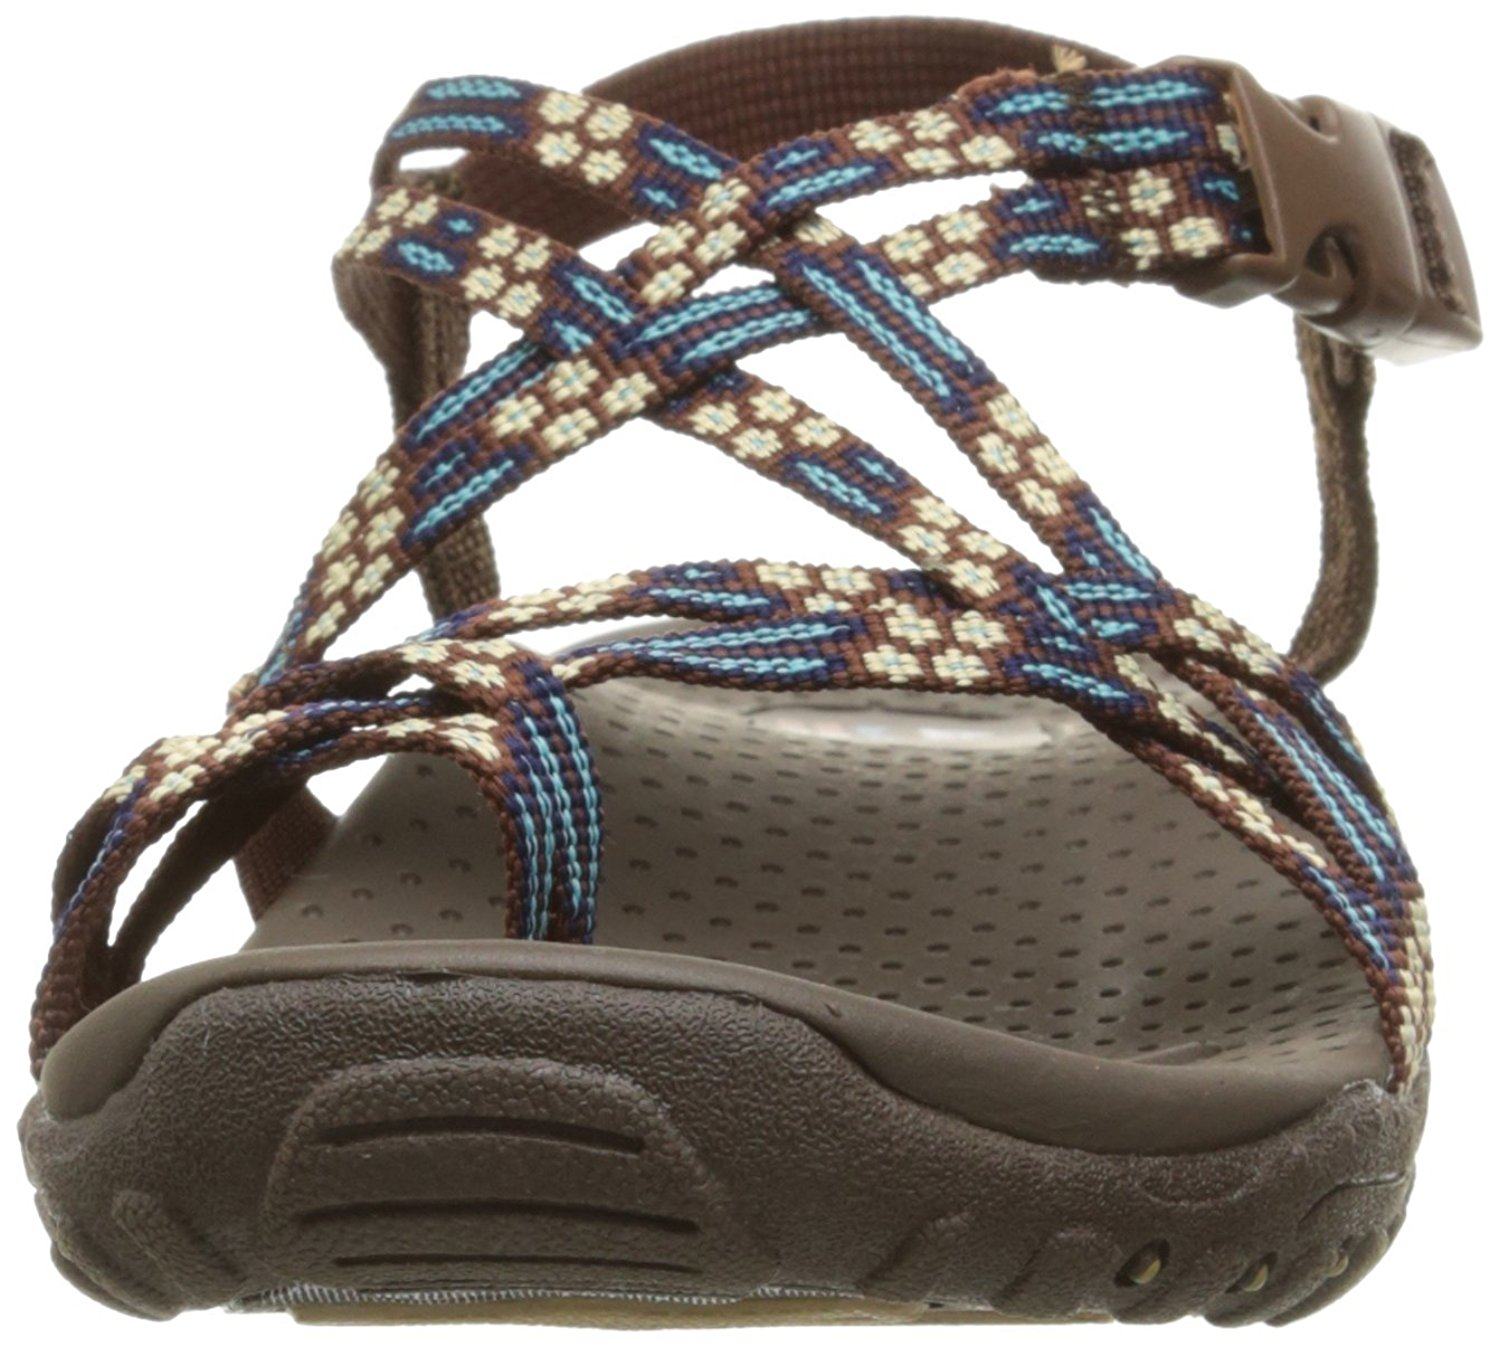 2020 discount for sale find lowest price Skechers Women's Reggae-Loopy Sandals